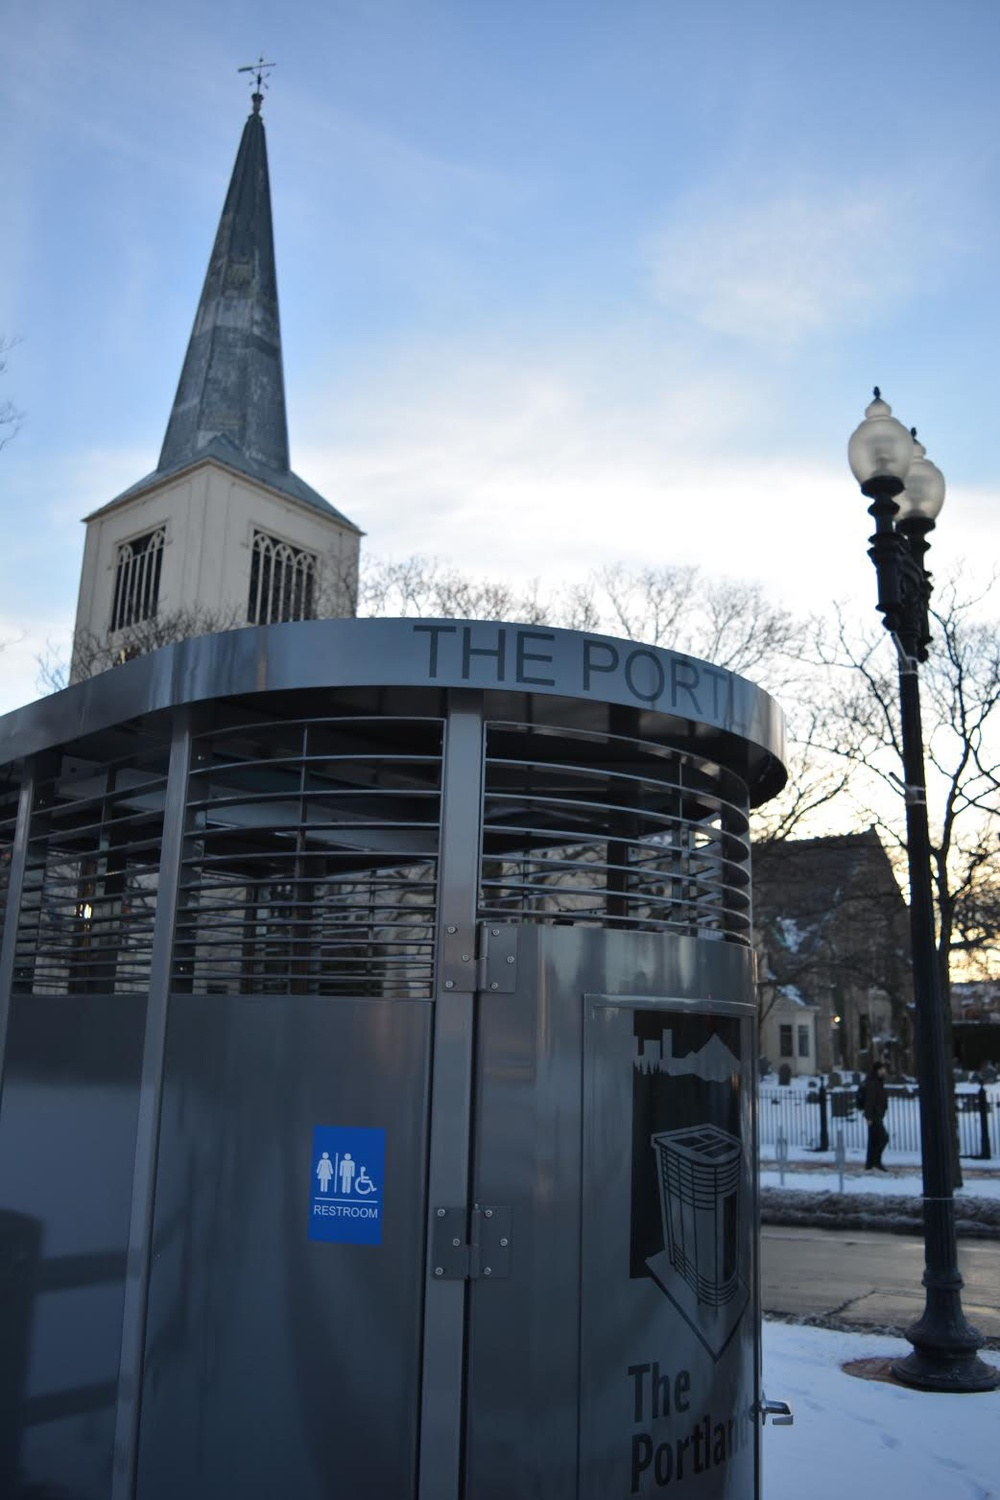 The Cambridge Department of Public Works anticipates that a stand-alone public toilet in Harvard Square will be complete in the next few weeks.